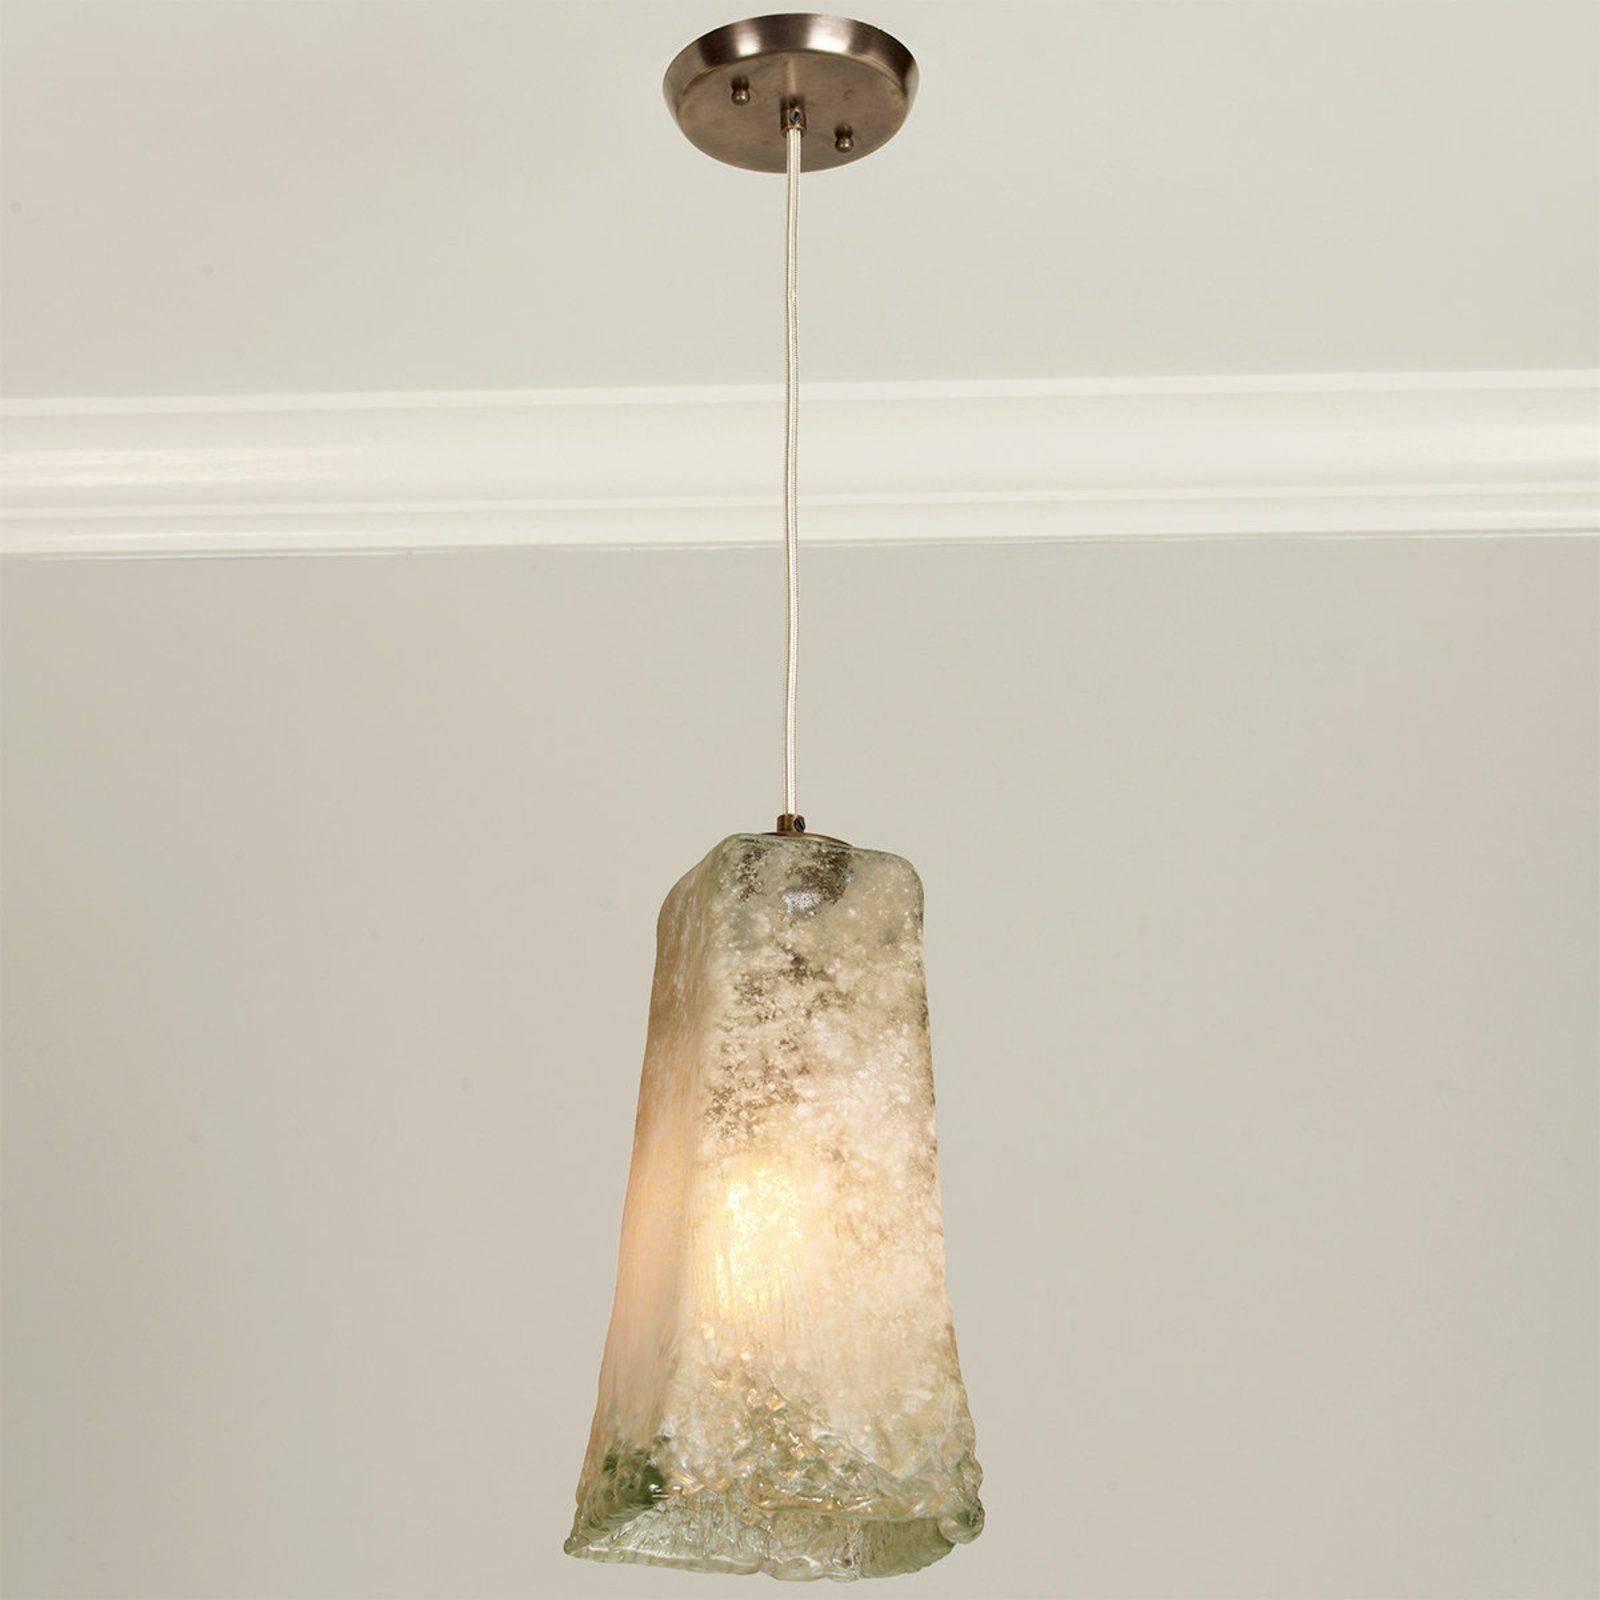 Recycled Glass Light Fixtures Luxury Recycled Glass Textured Pendant Lights